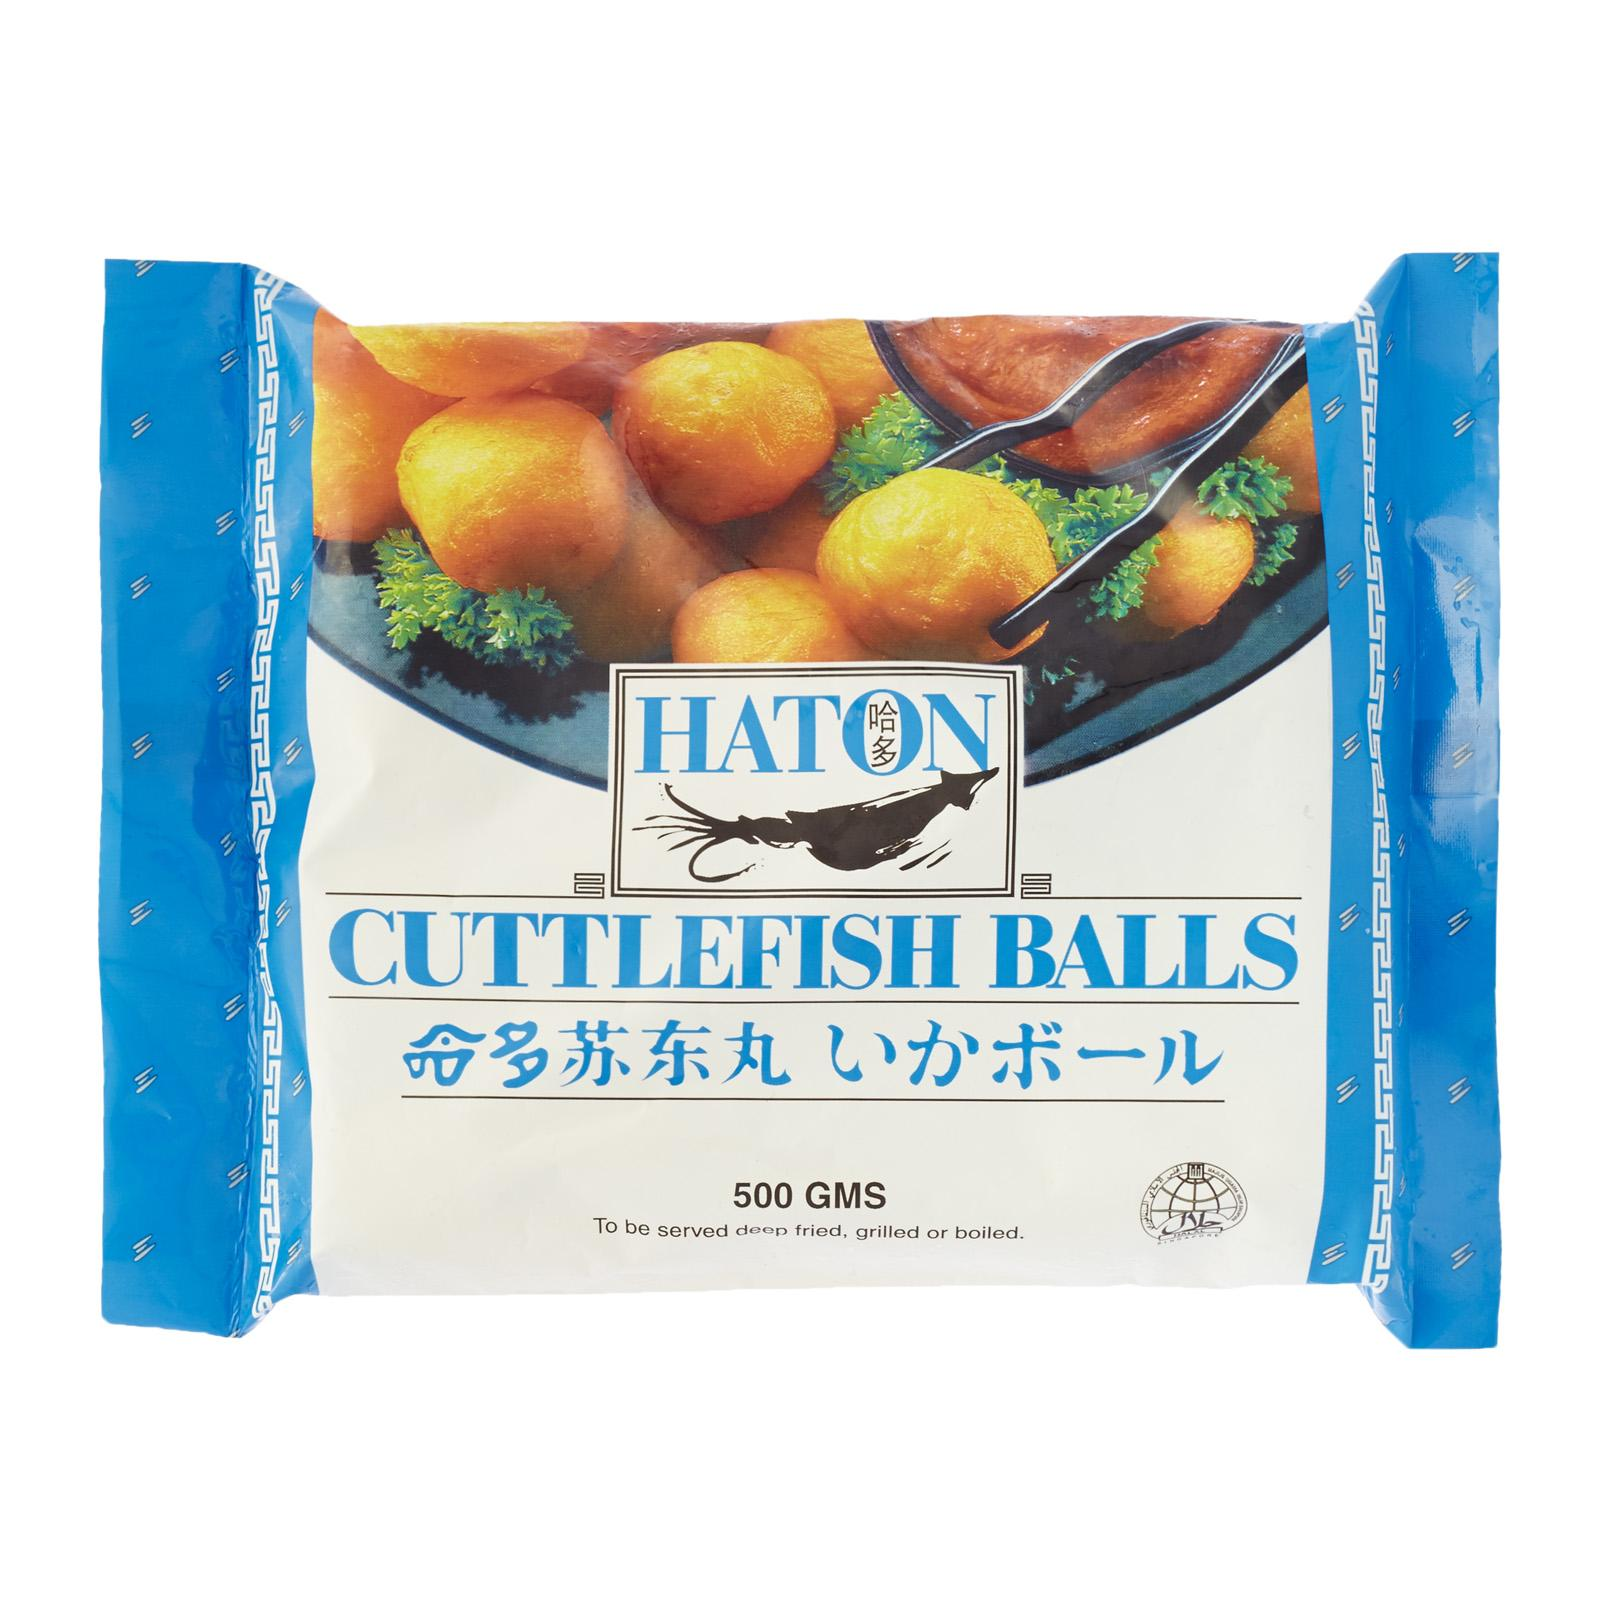 Haton Cuttlefish Ball - Frozen